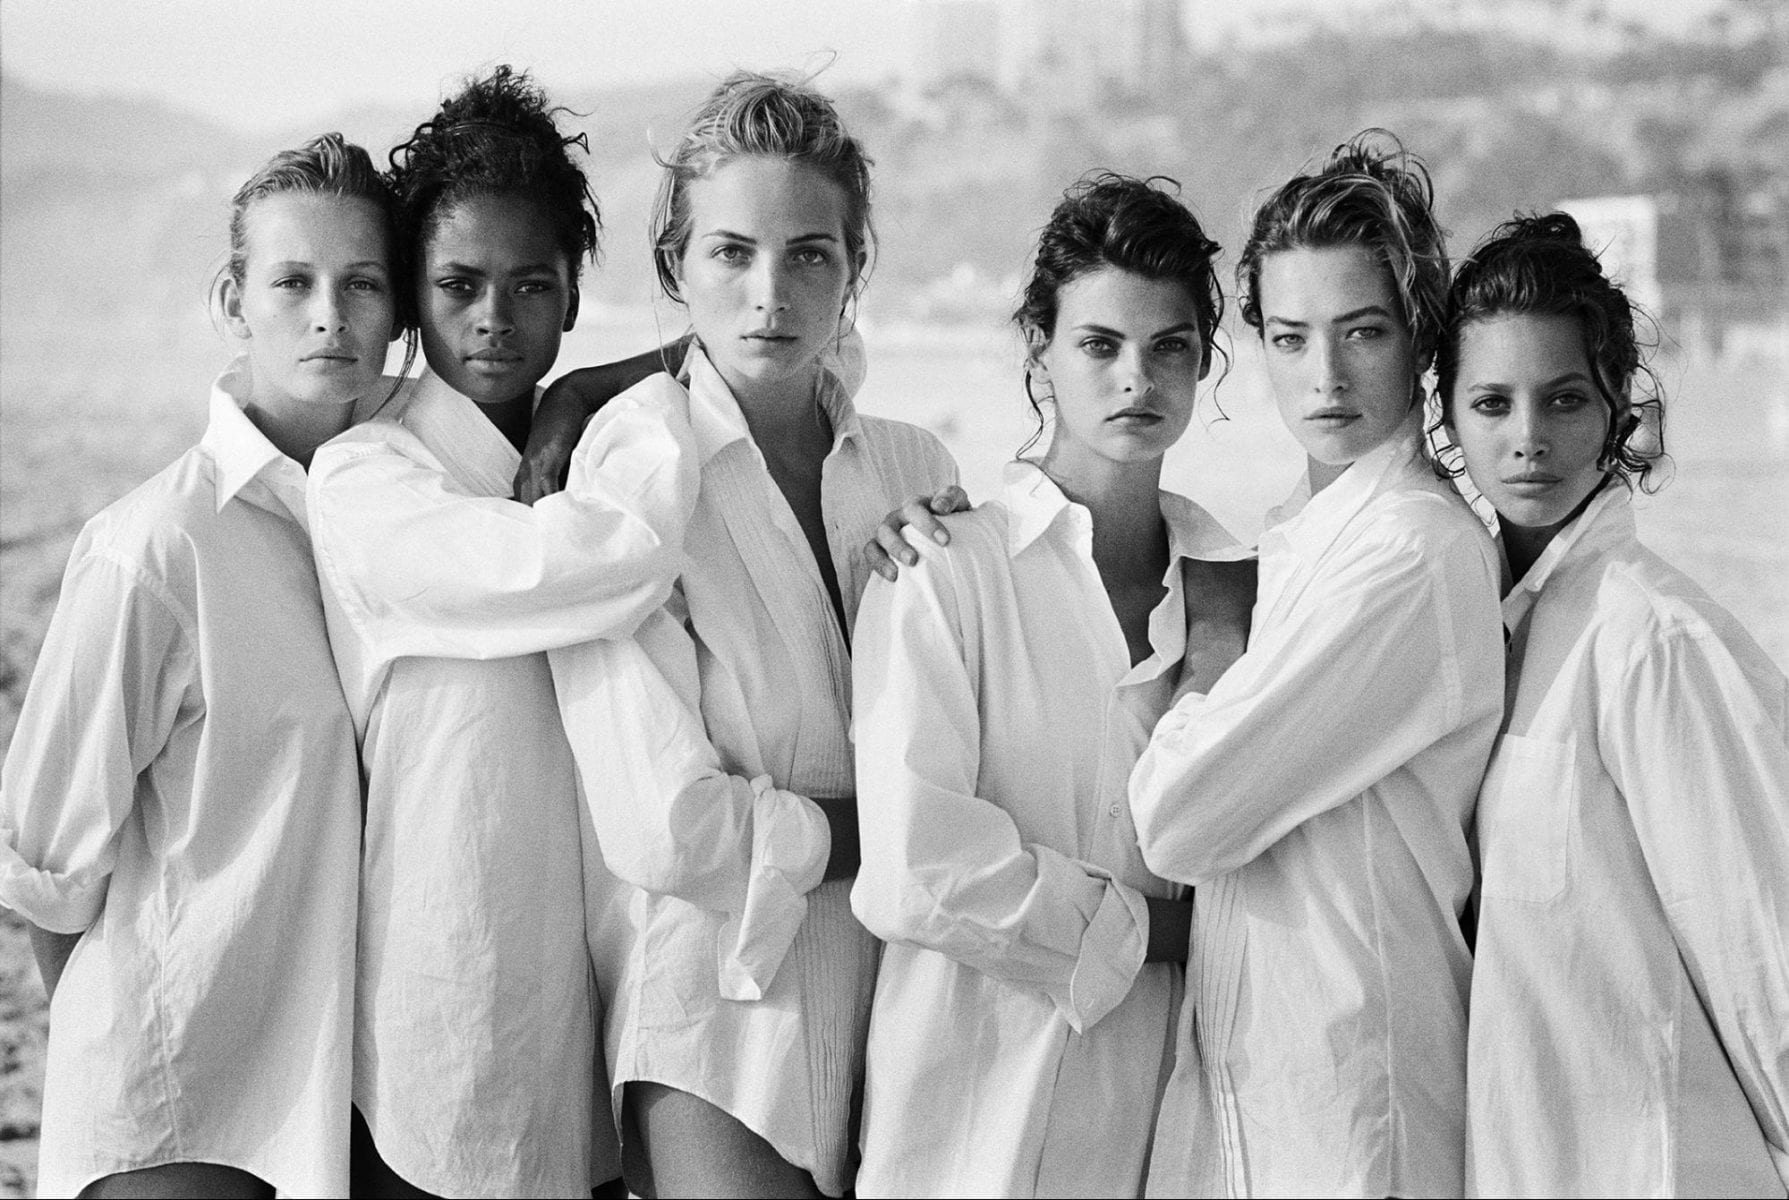 supermodels Estelle Lefébure, Karen Alexander, Rachel Williams, Linda Evangelista, Tatjana Patitz and Christy Turlington, Malibu 1988 Peter Lindbergh